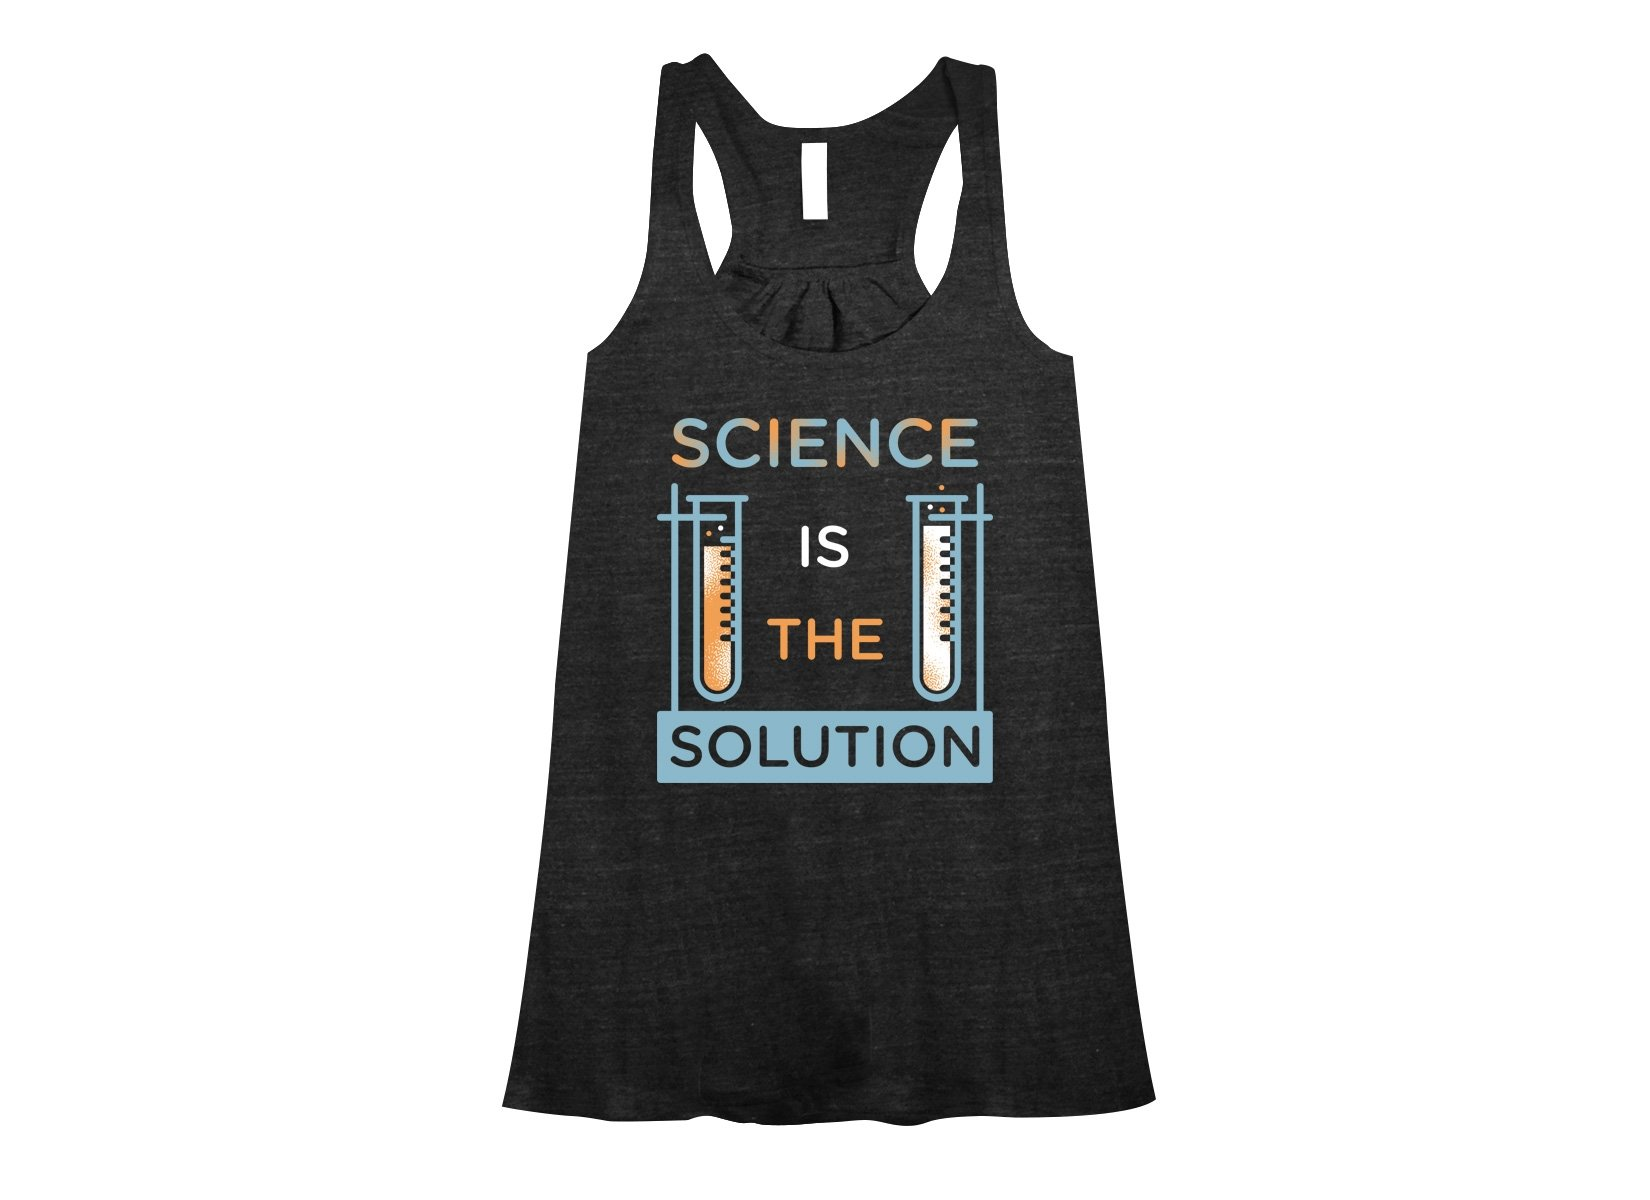 Science Is The Solution on Womens Tanks T-Shirt